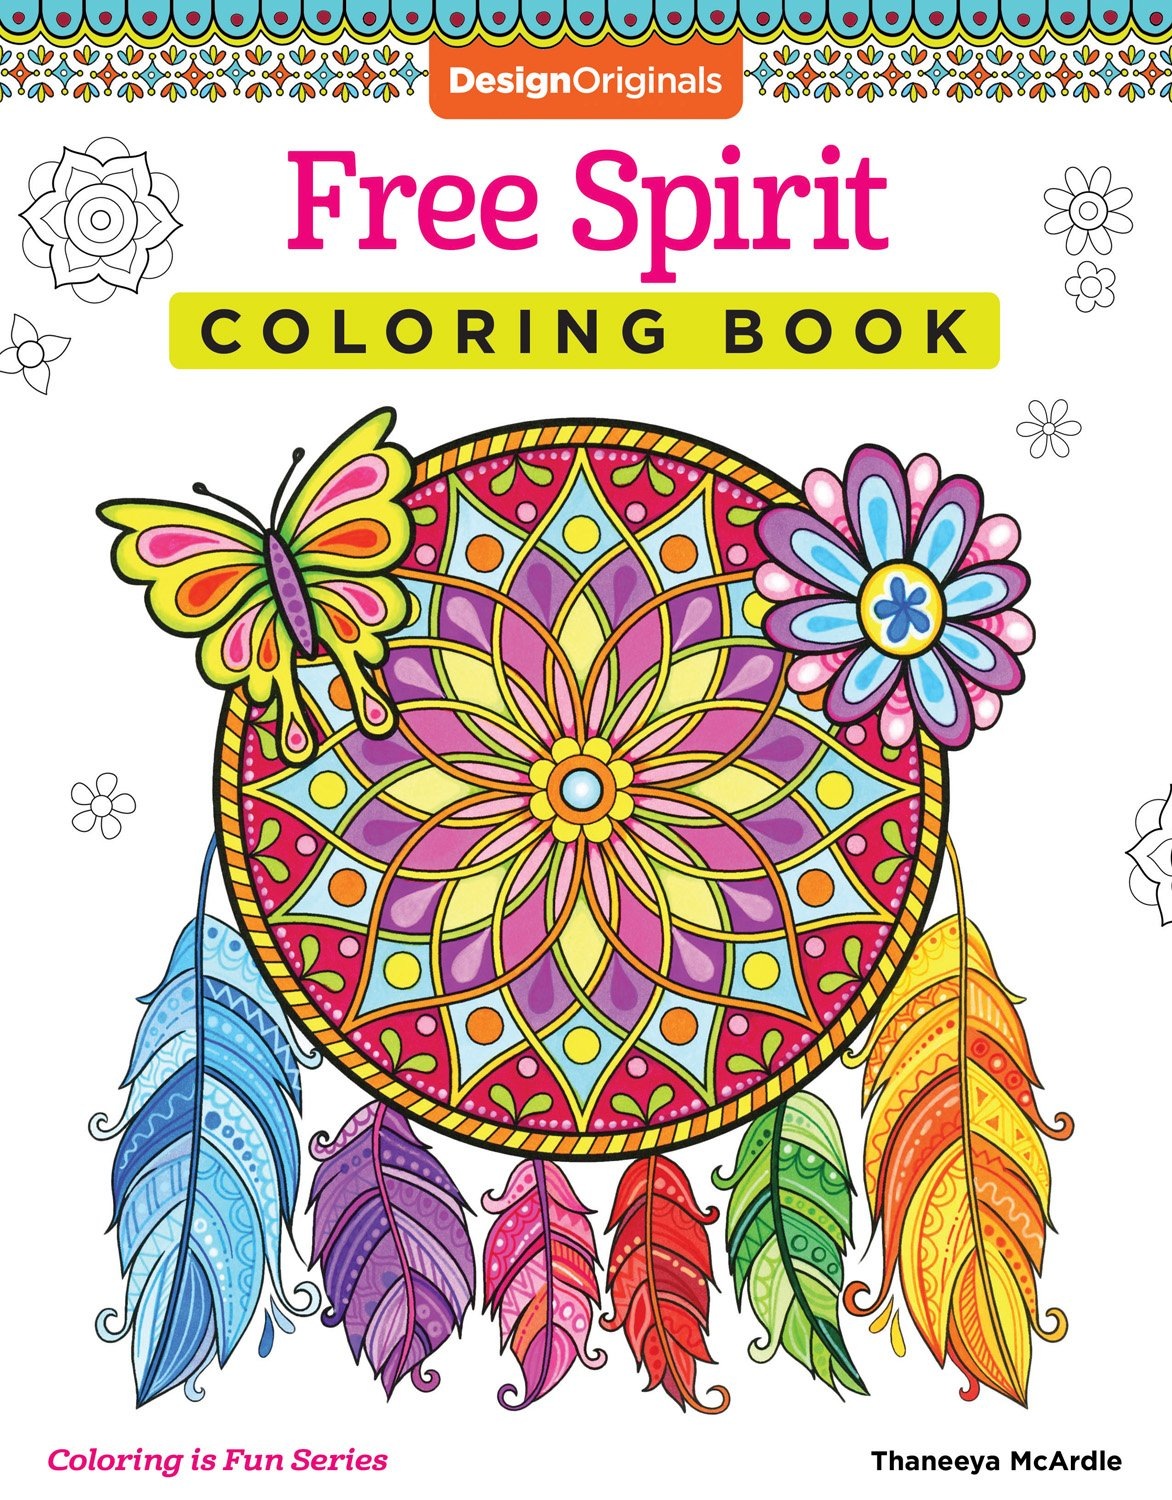 Amazon Free Spirit Coloring Book Is Fun Design Originals 32 Whimsical Quirky Art Activities From Thaneeya McArdle On High Quality